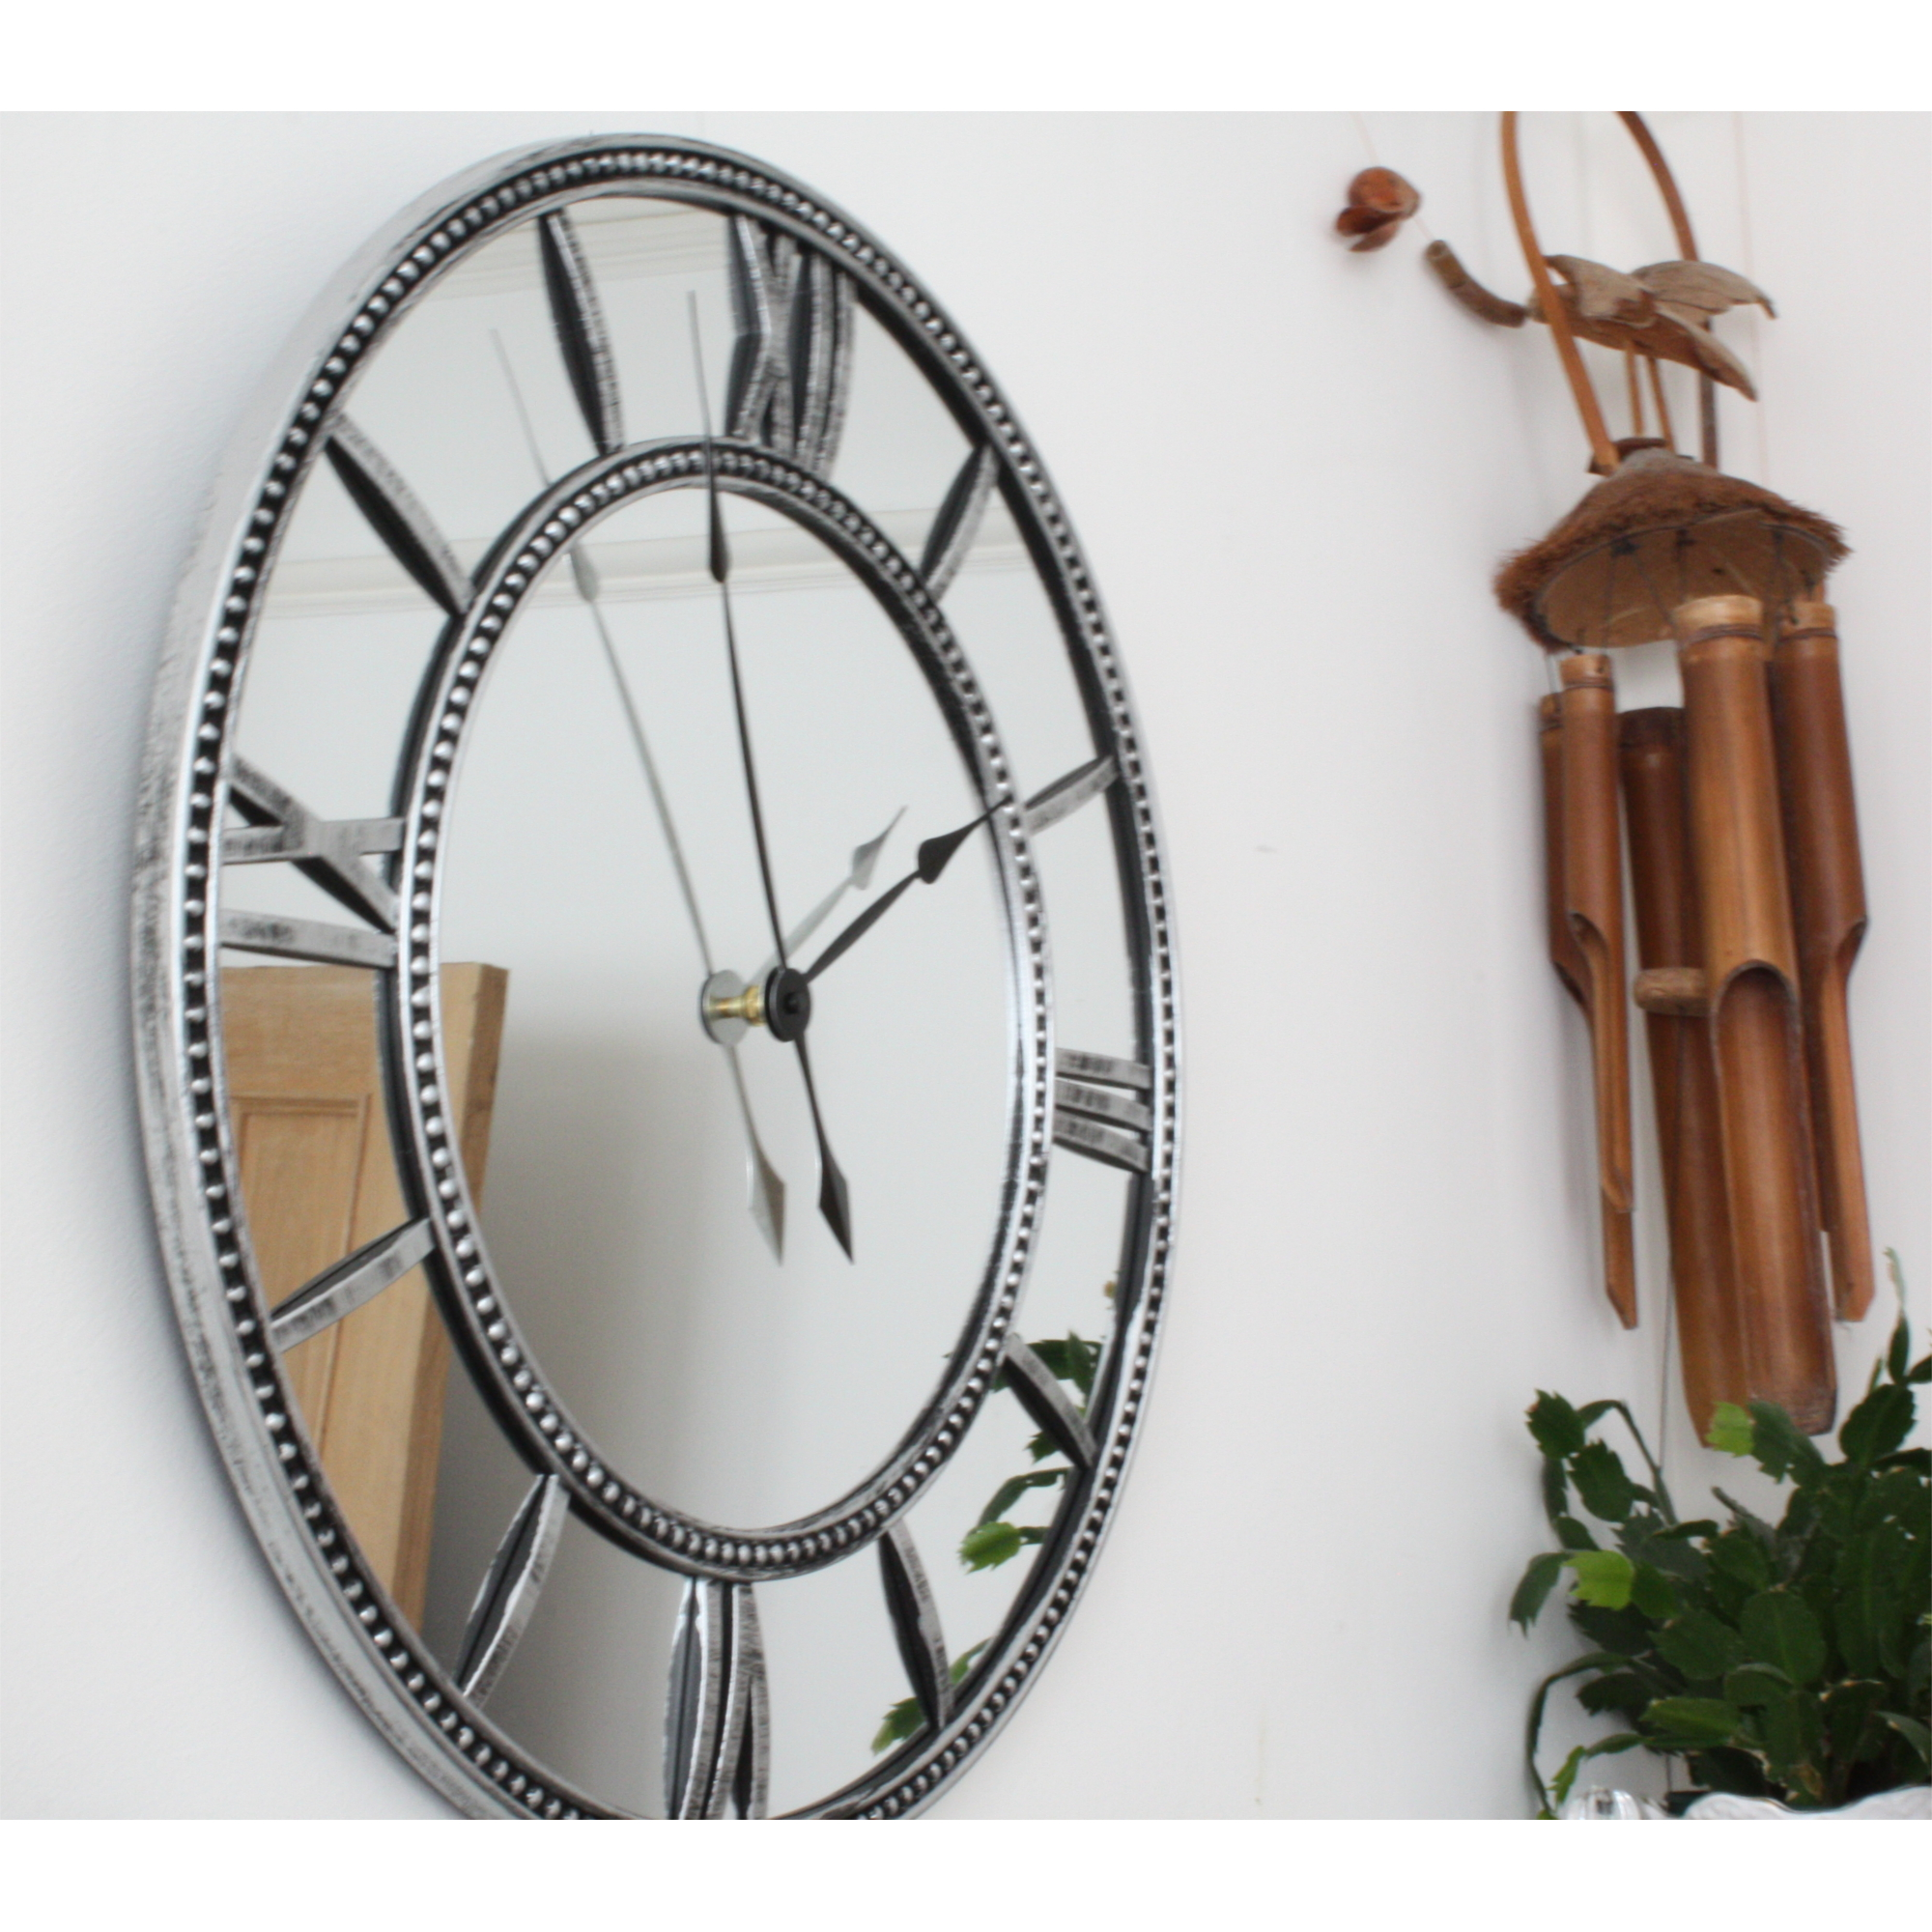 Roman Numeral Mirrored Glass Clock Blendboutique